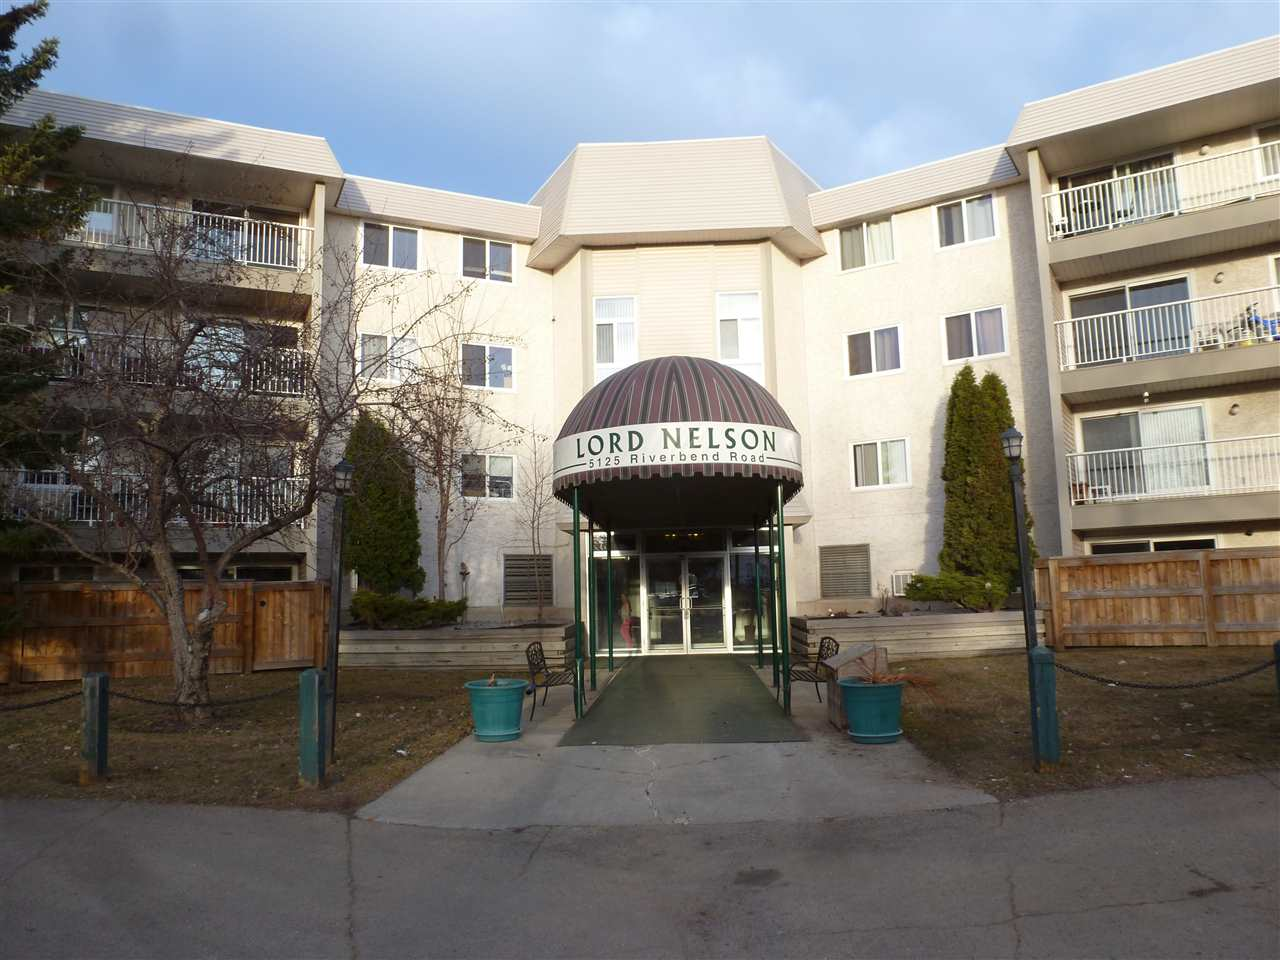 **Holy! - $197,900** for this very spacious 3-Bedroom/2 Bathroom Condo(1150 Sq Ft) on the 3rd Floor at the Lord Nelson in Riverbend/Brandner Gardens. Features newer laminate flooring, windows and  upgraded blinds, galley kitchen, Balcony. Massive and marvellous black wall unit in Living Room will stay. Comes with 2 Outside Parking Stalls. The Lord Nelson also features an Indoor Swimming Pool and HotTub off the main floor. Guest Suite and Visitor Parking is also available. Great location too - close to schools and with quick access to the Whitemud Freeway. **Very Quick Possession Available!**